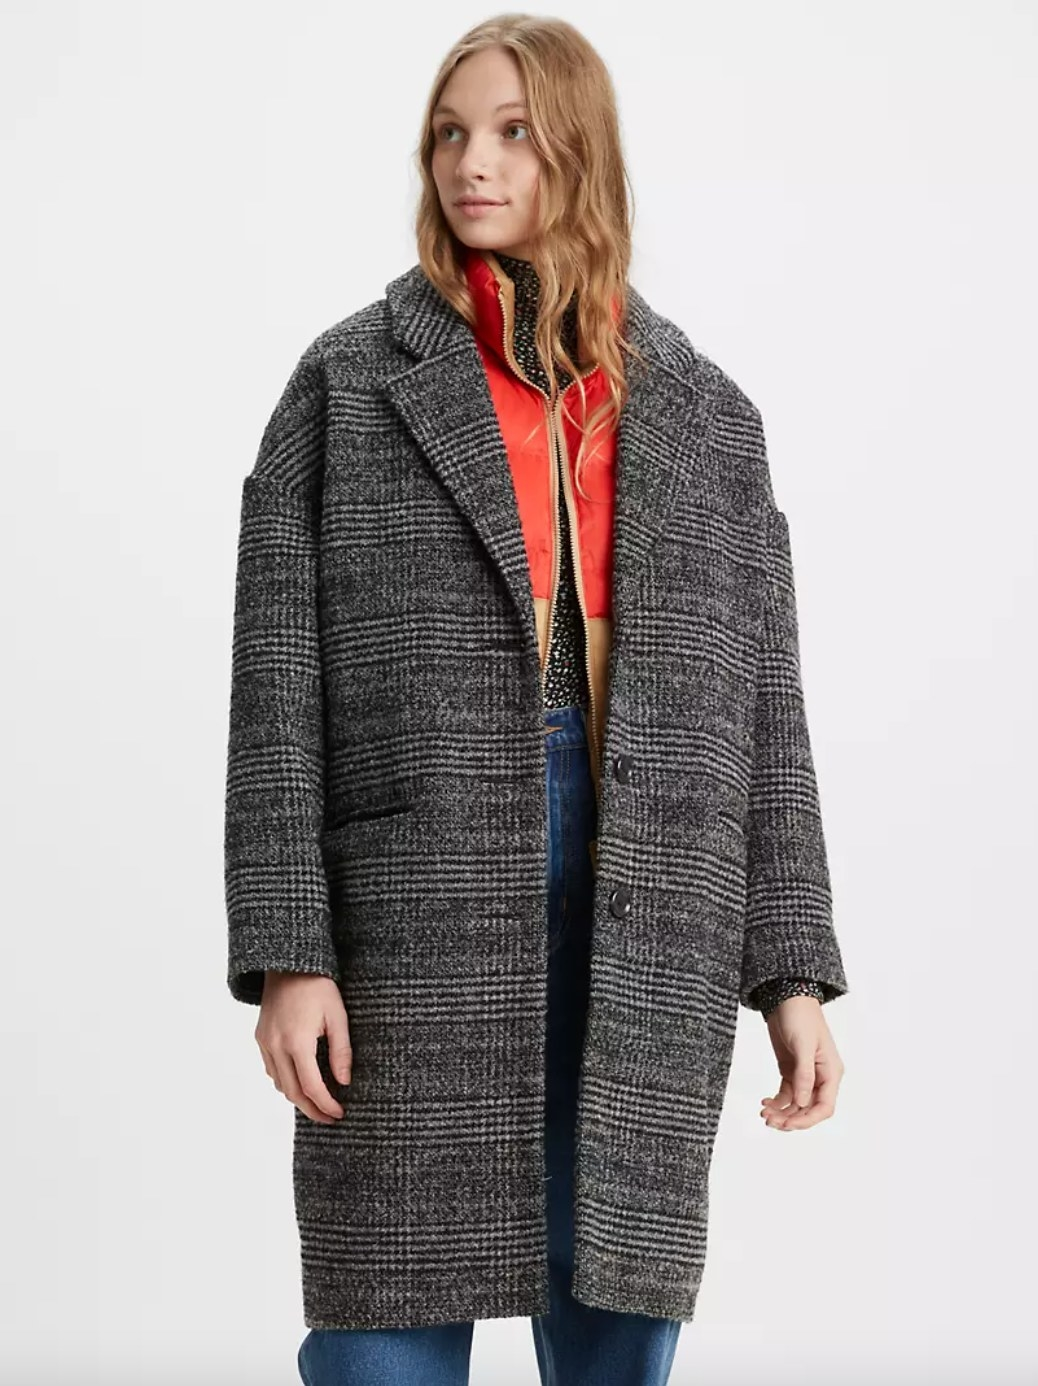 The wool cocoon coat in caviar black